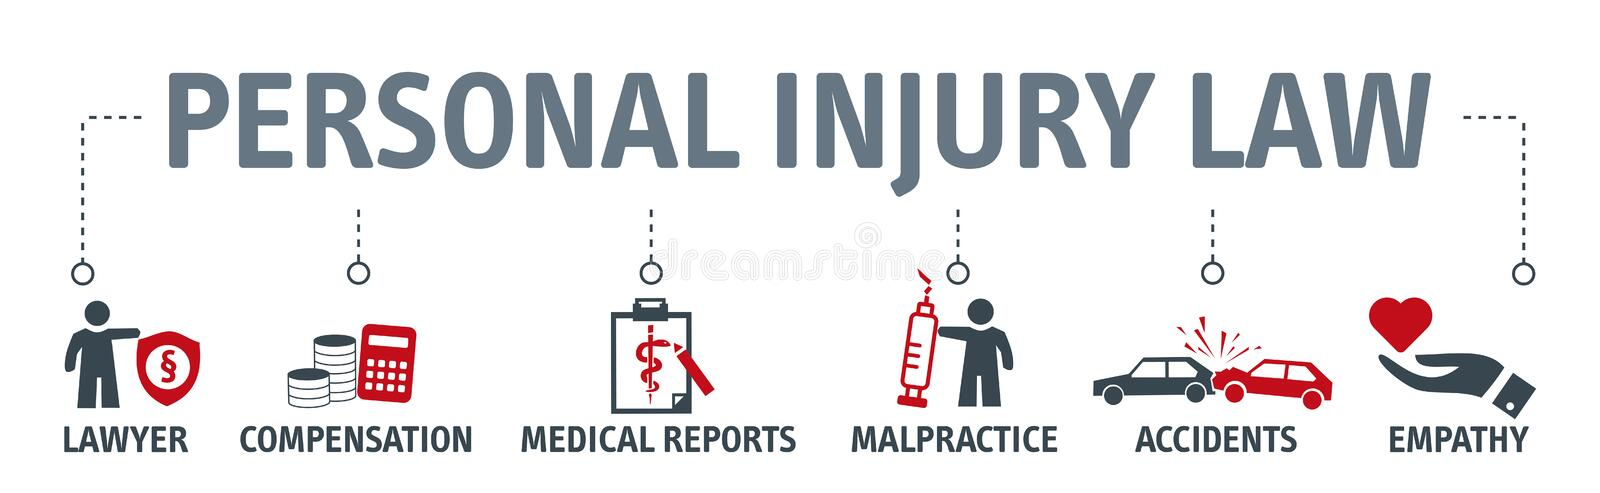 Personal injury law concept. Banner with icons. Banner personal injury law word vector illustration concept with icons stock illustration